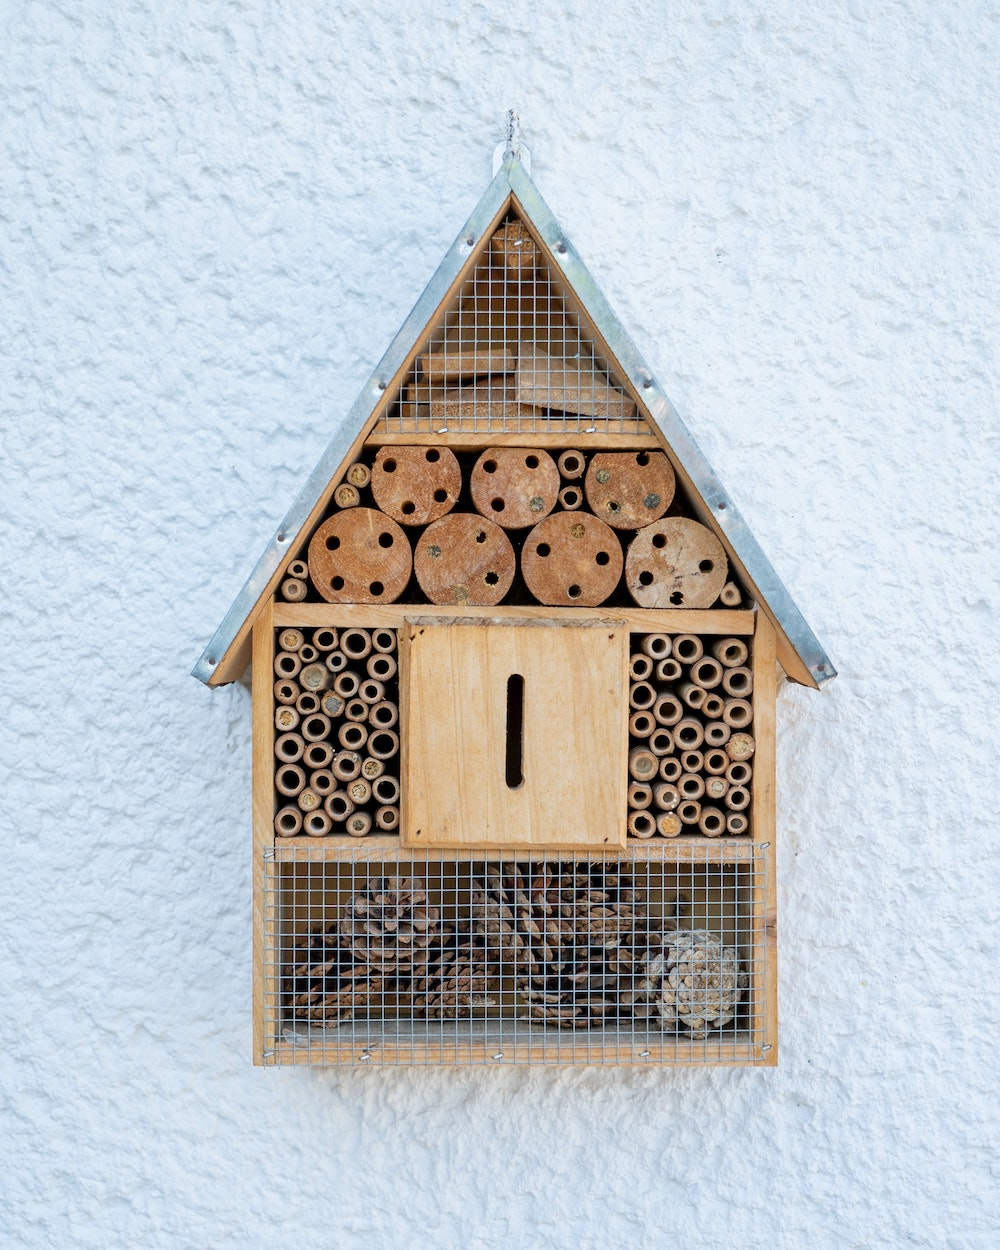 50 DIY bug hotels from Carftionary